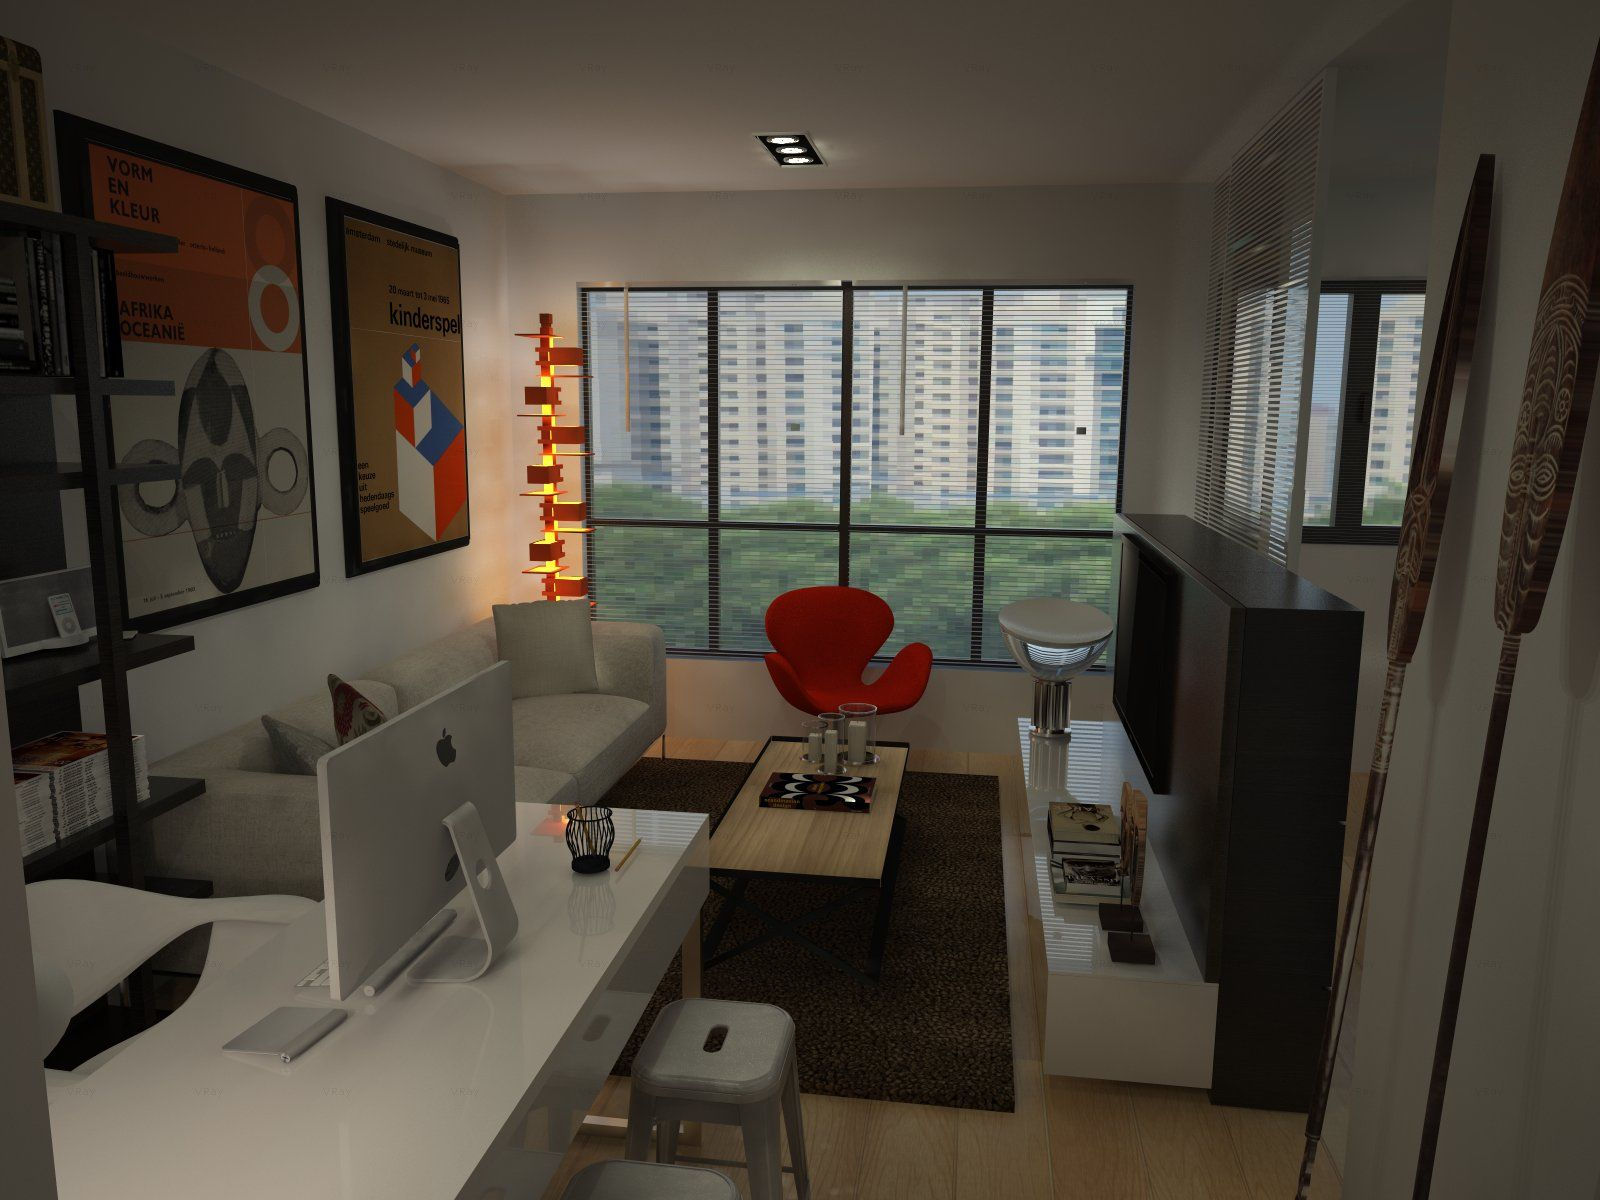 2 Bedroom Flat Decorating Ideas Of Hdb Bto For Singles 2 Room 47sqm Hdb Apartment In